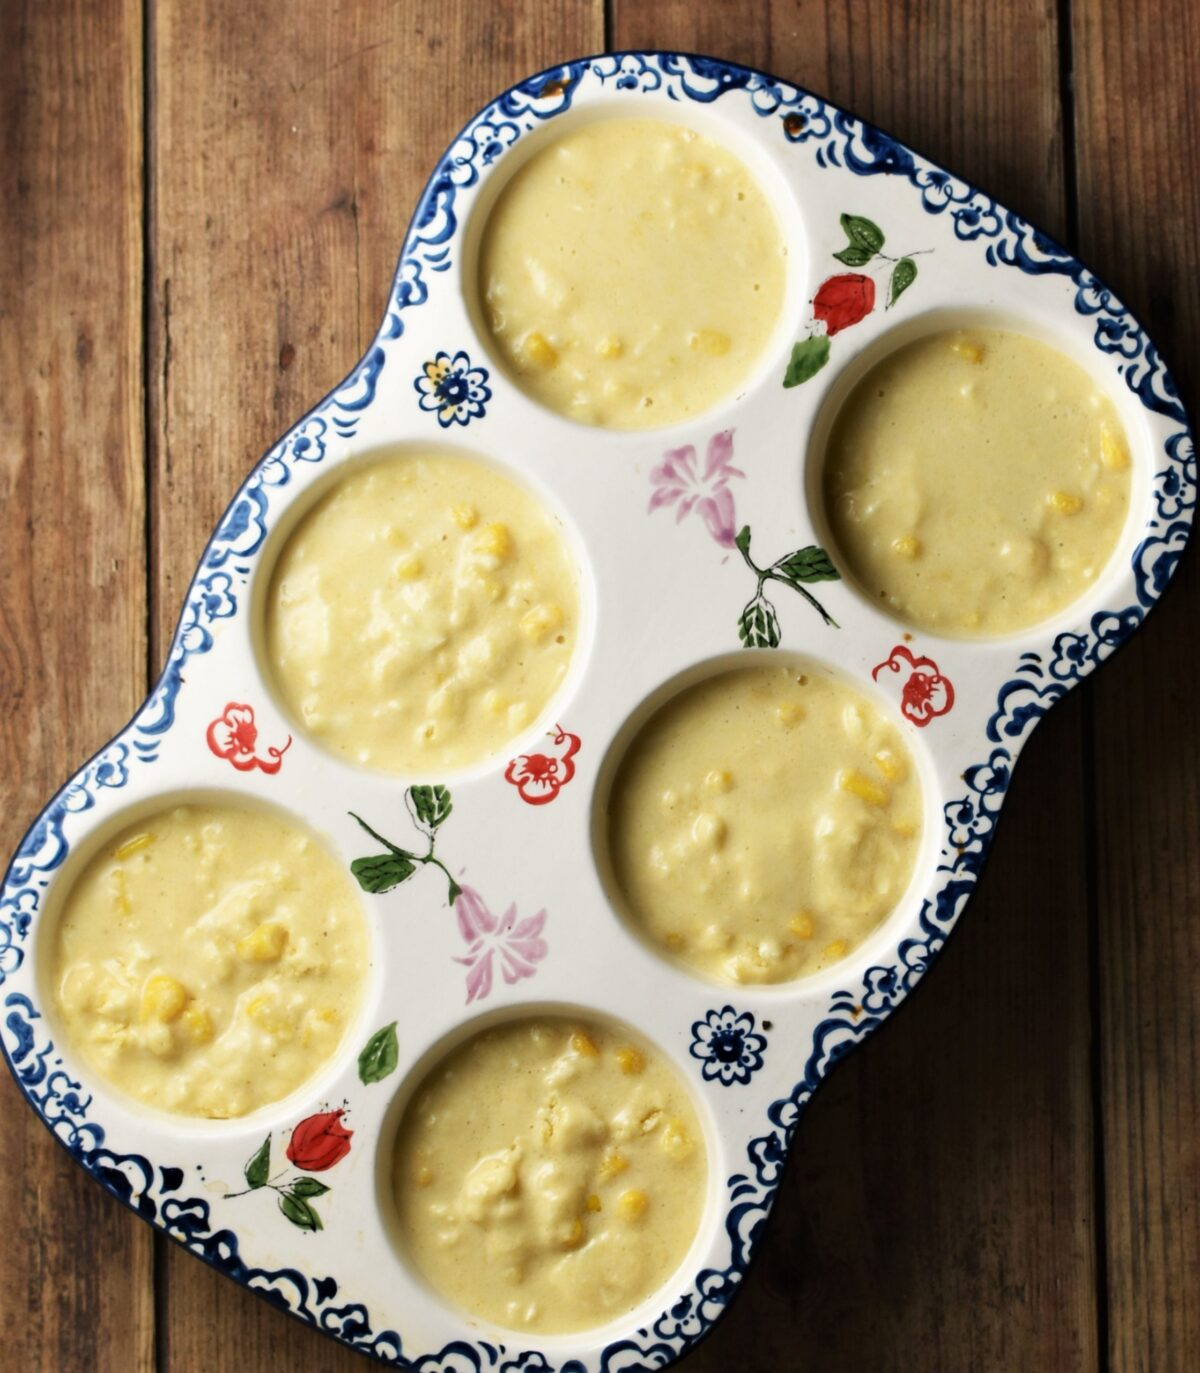 Cornbread muffins batter in ceramic white pan with blue flowery pattern.